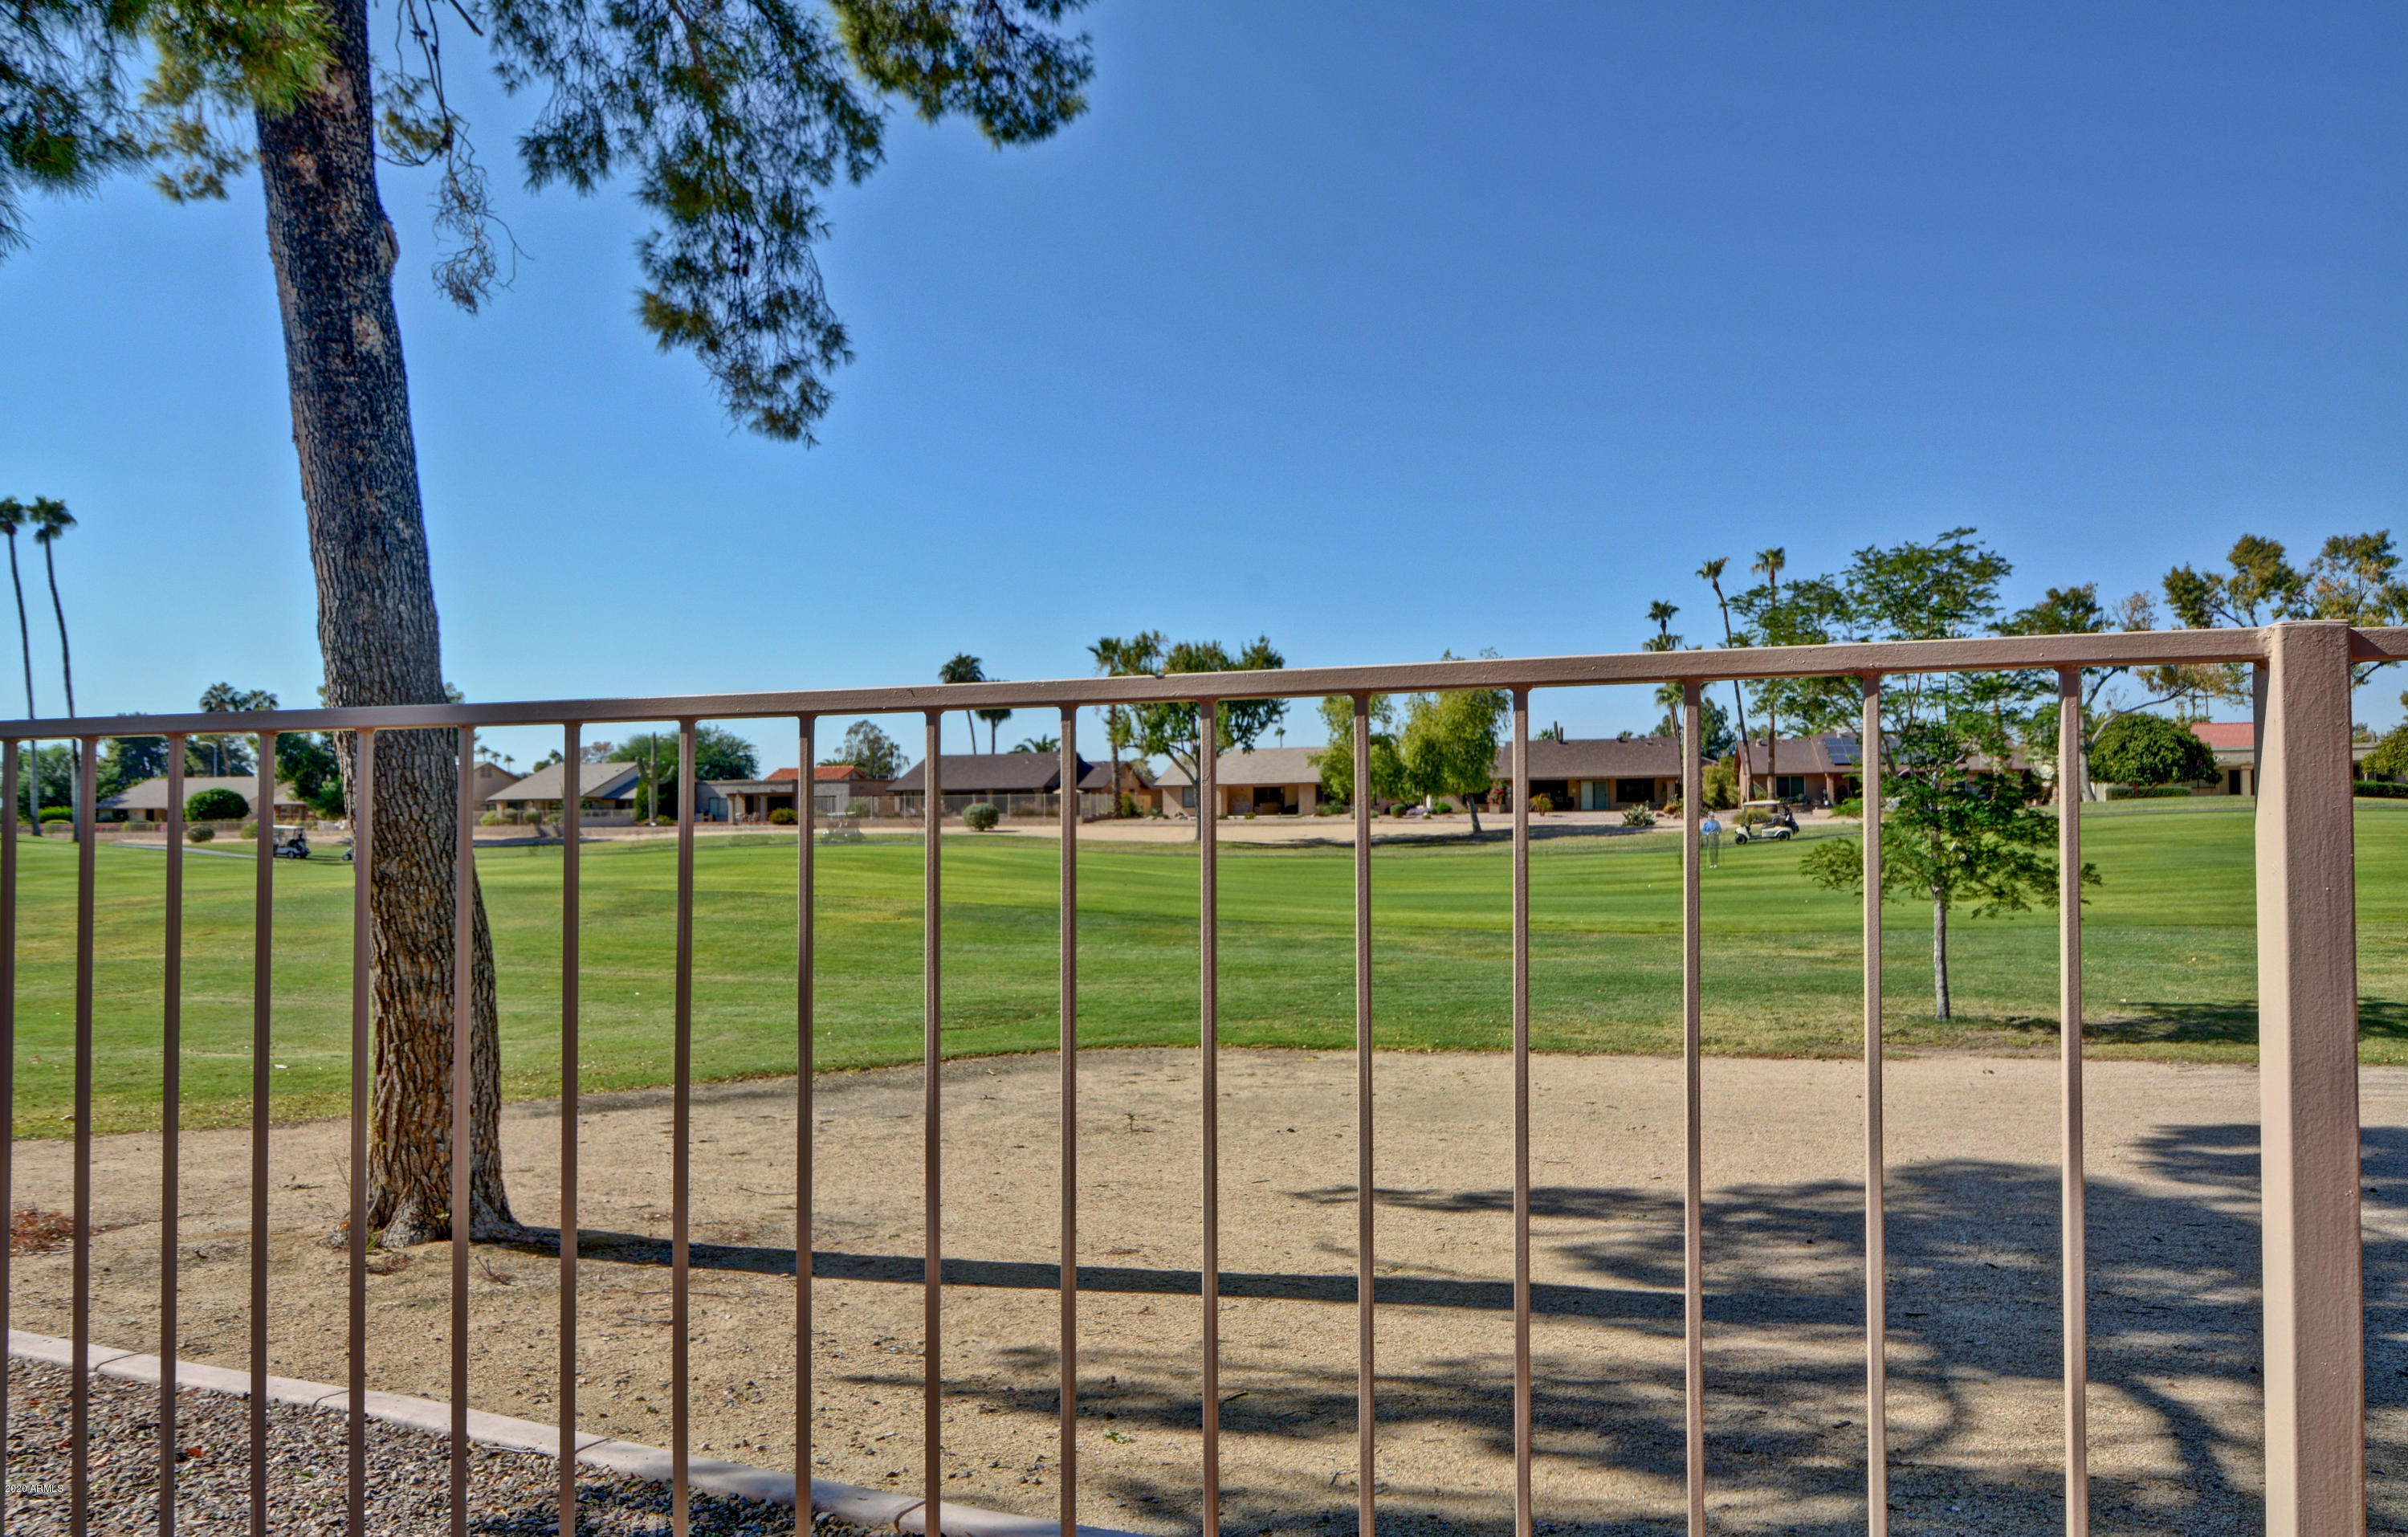 MLS 6152178 18806 N 95TH Avenue, Peoria, AZ 85382 Peoria AZ Condo or Townhome